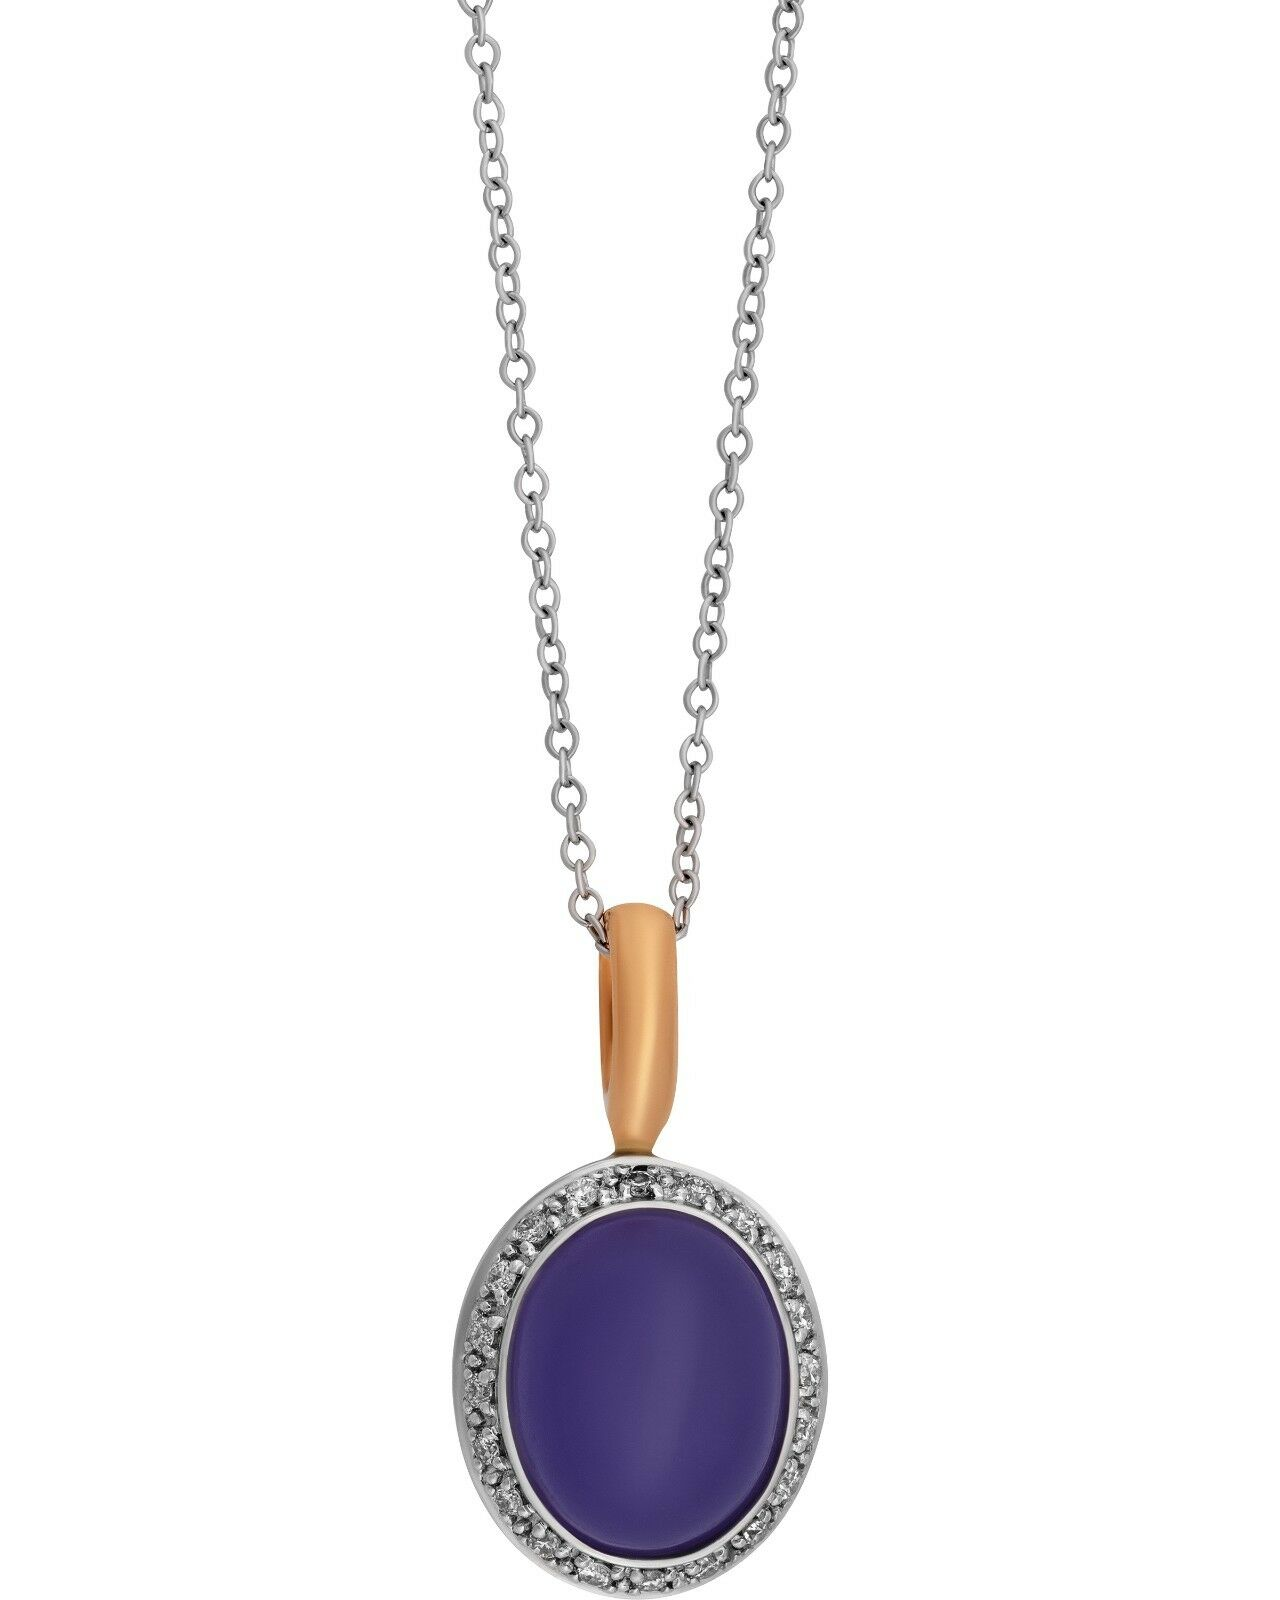 Mimi Milano 18k pink And White gold Lavender Jade And Diamond Pendant P320C8LB